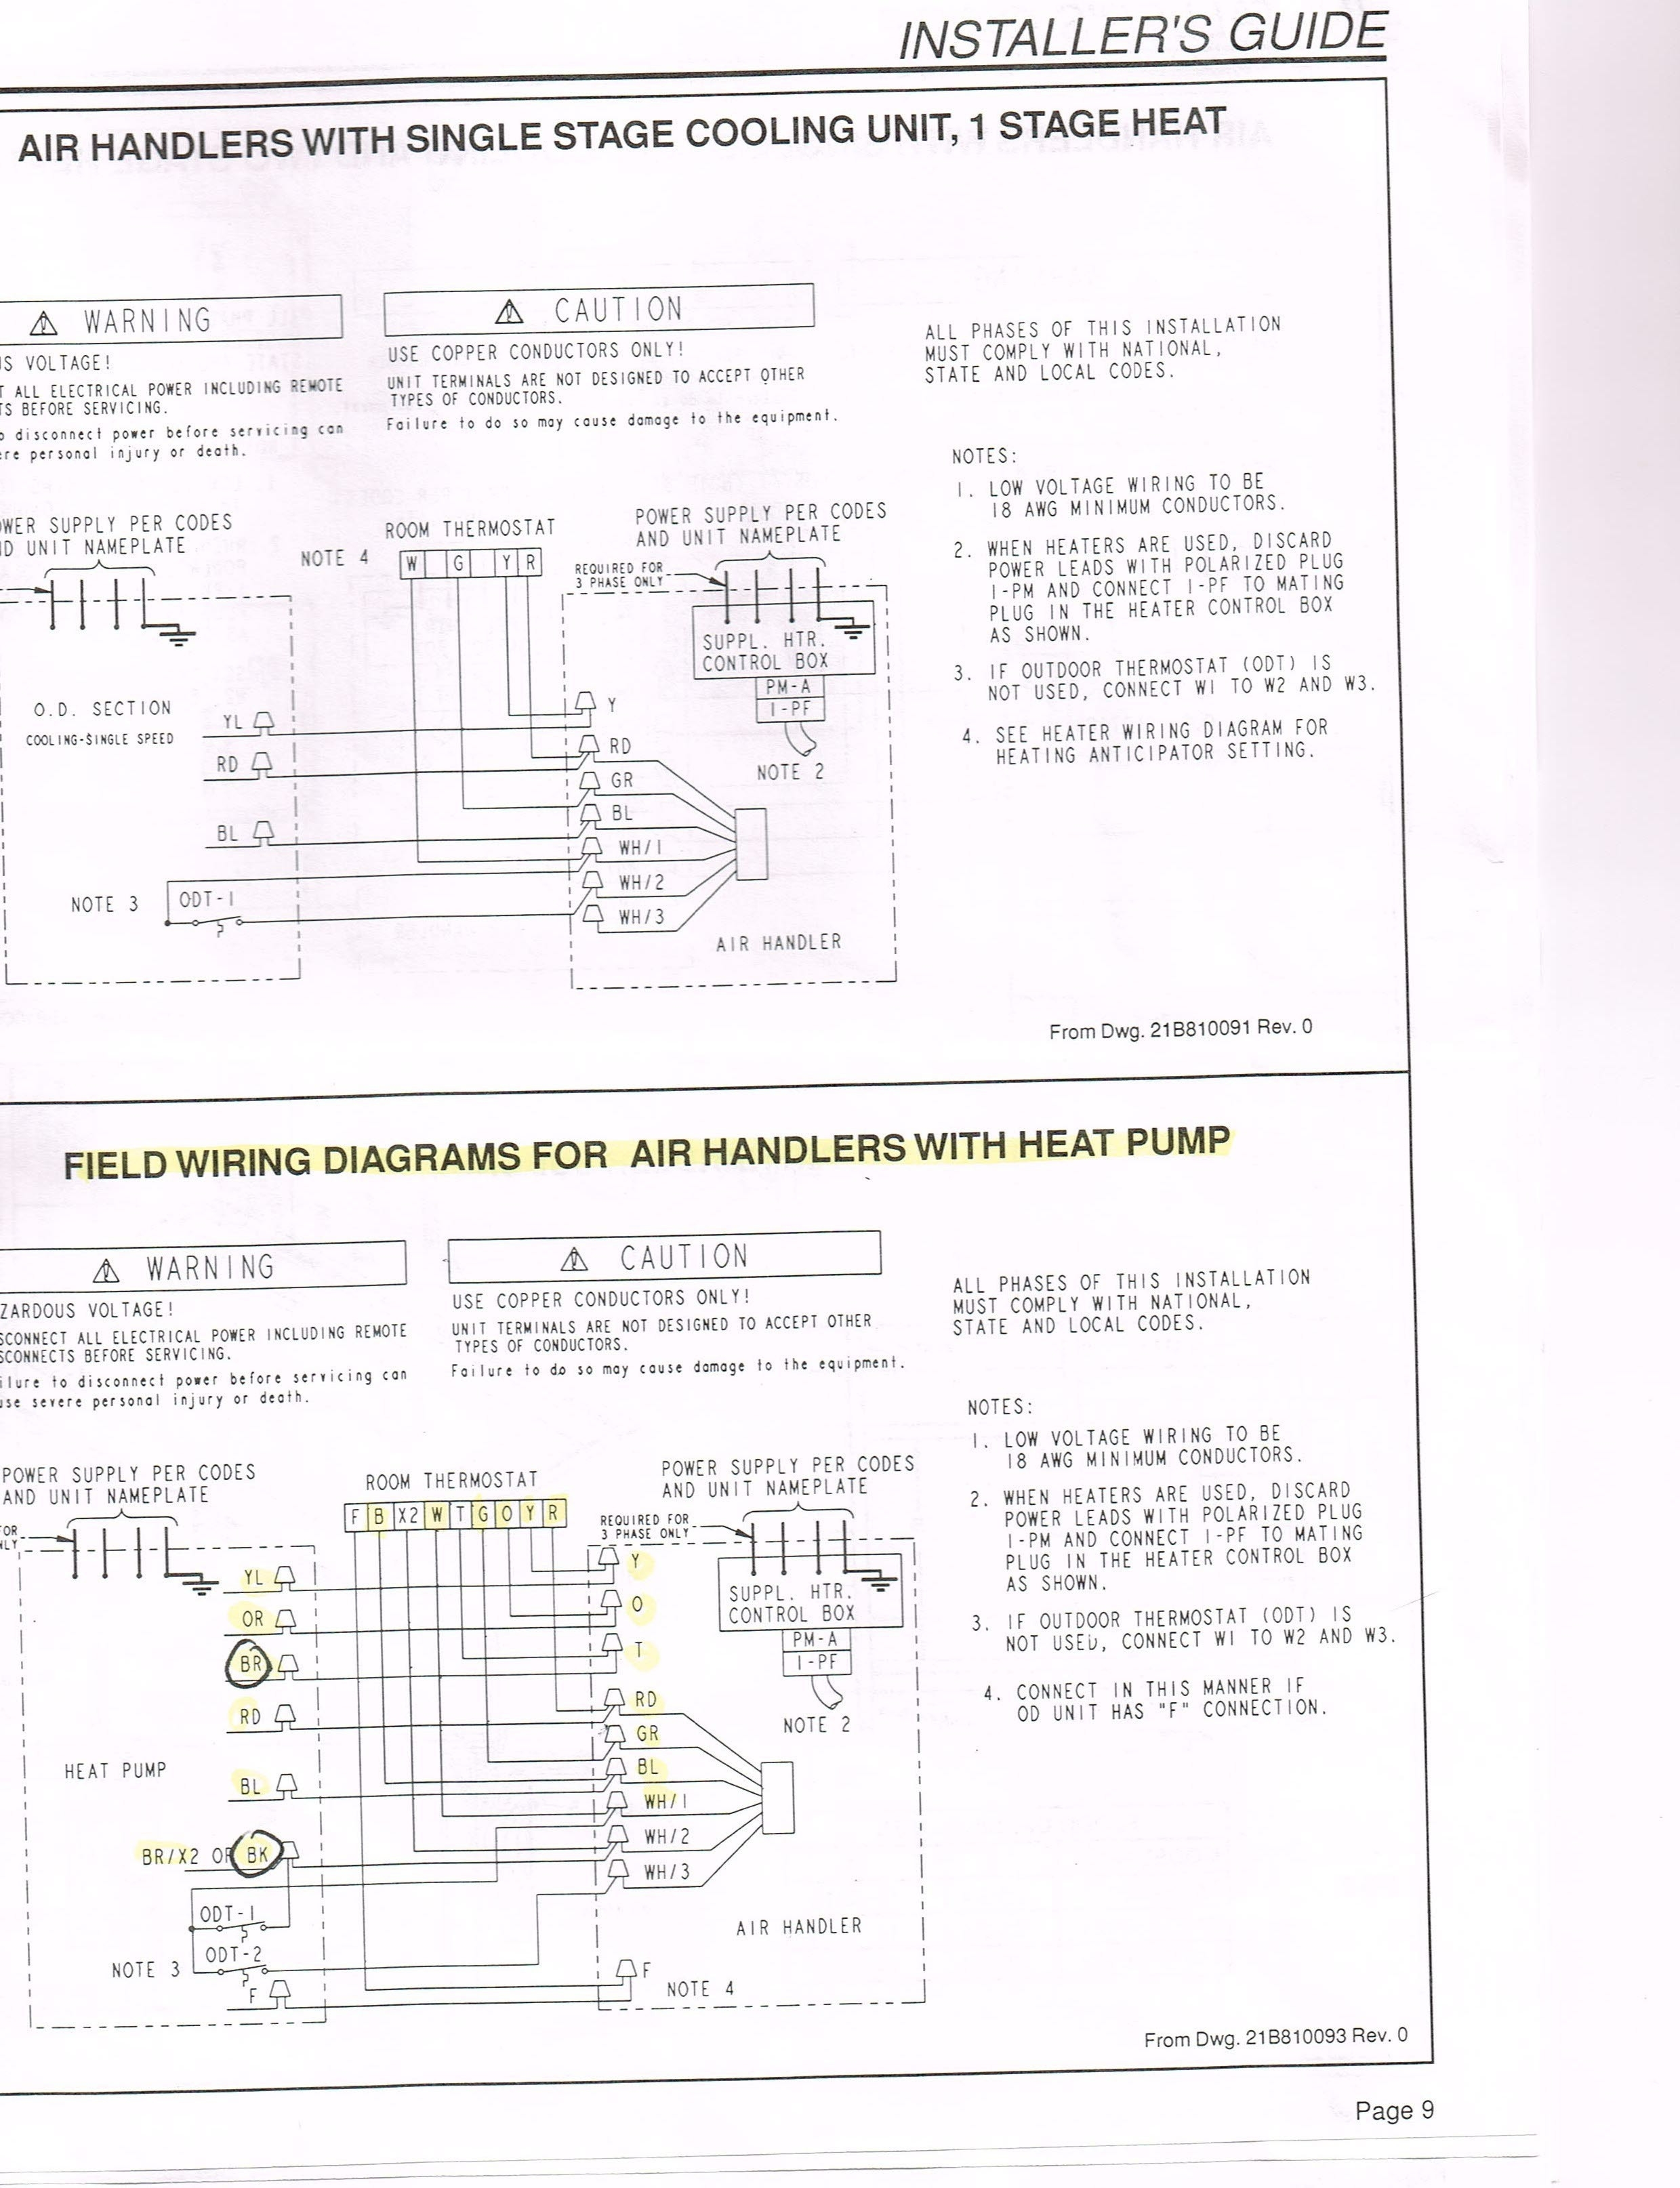 Ul 924 Relay Wiring Diagram | Free Wiring Diagram Handler Wiring Diagram Relay on relay pump diagram, 12 volt relay diagram, power relay diagram, relay circuit, 1999 pontiac bonneville parts diagram, 8 pin relay diagram, horn relay diagram, fan relay diagram, relay lens diagram, light relay wire diagram, relay modules diagram, relay connector diagram, relay switch, relay schematic, block diagram, 2005 ford escape fuse panel diagram, 5l3t aa relay diagram, freightliner tail light diagram, ignition relay diagram, relay parts,